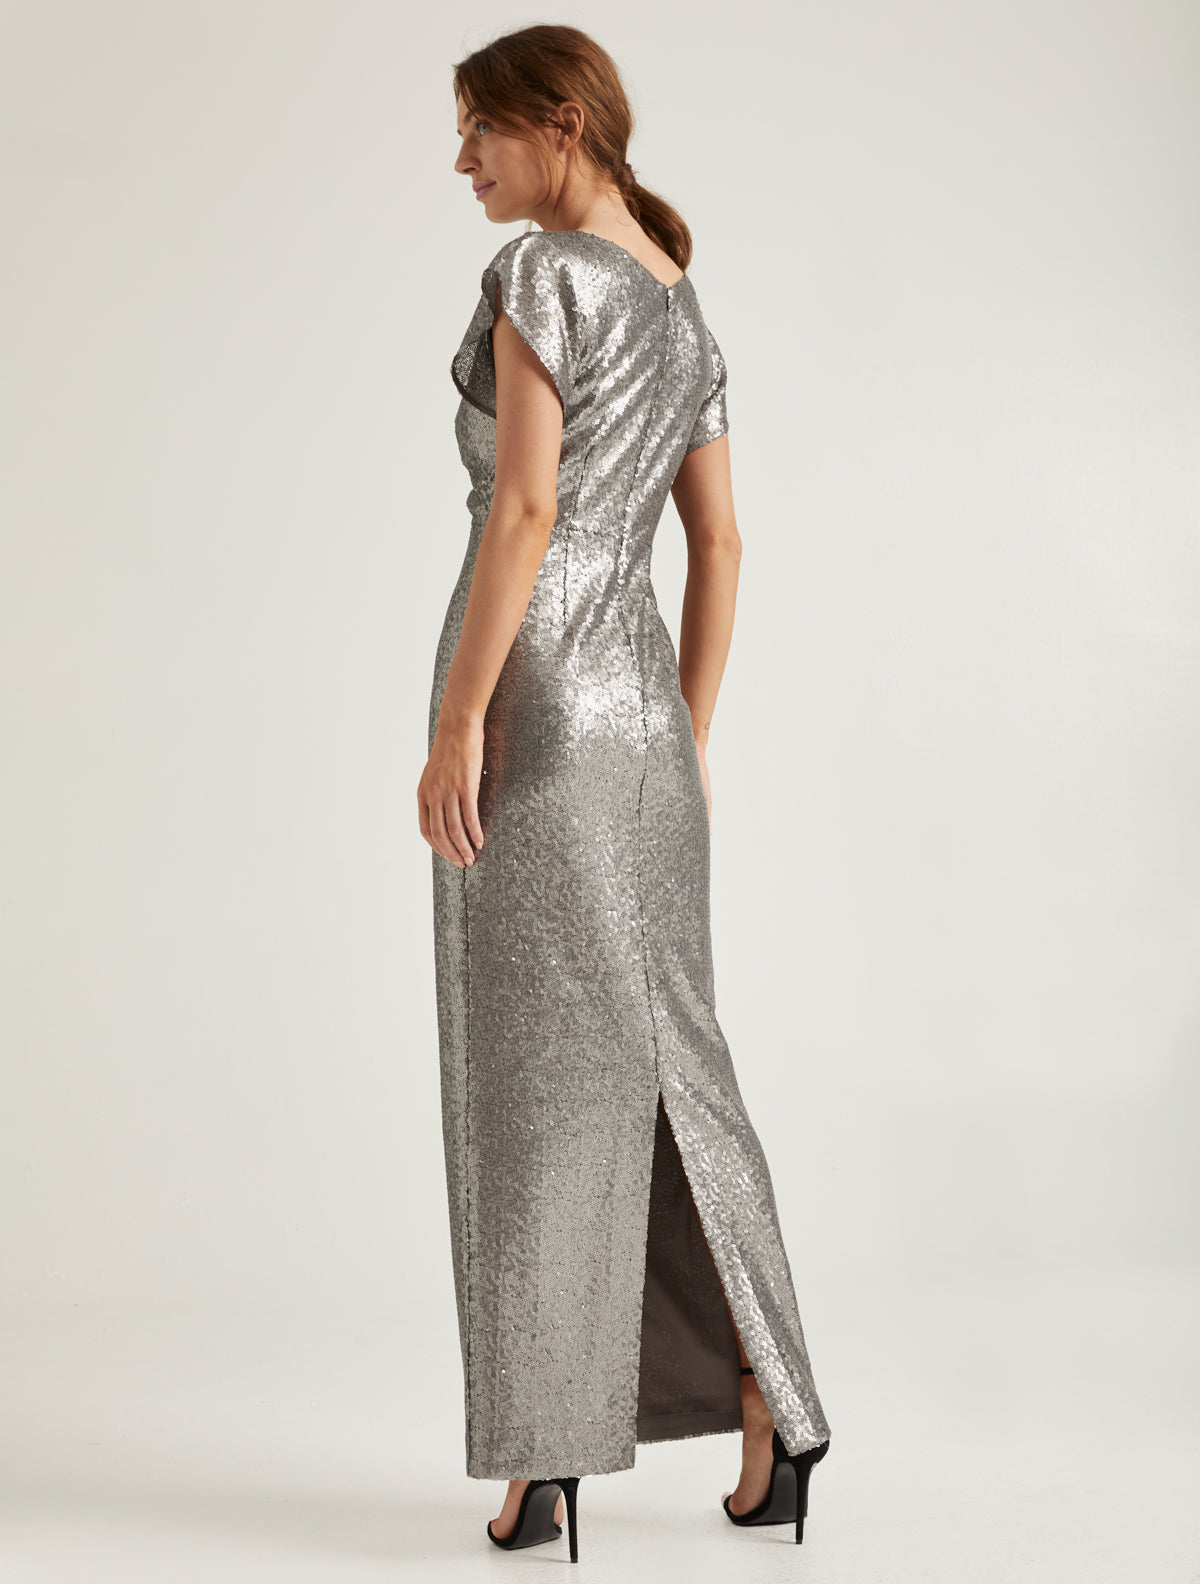 Cowl Sequined Gown - Halston